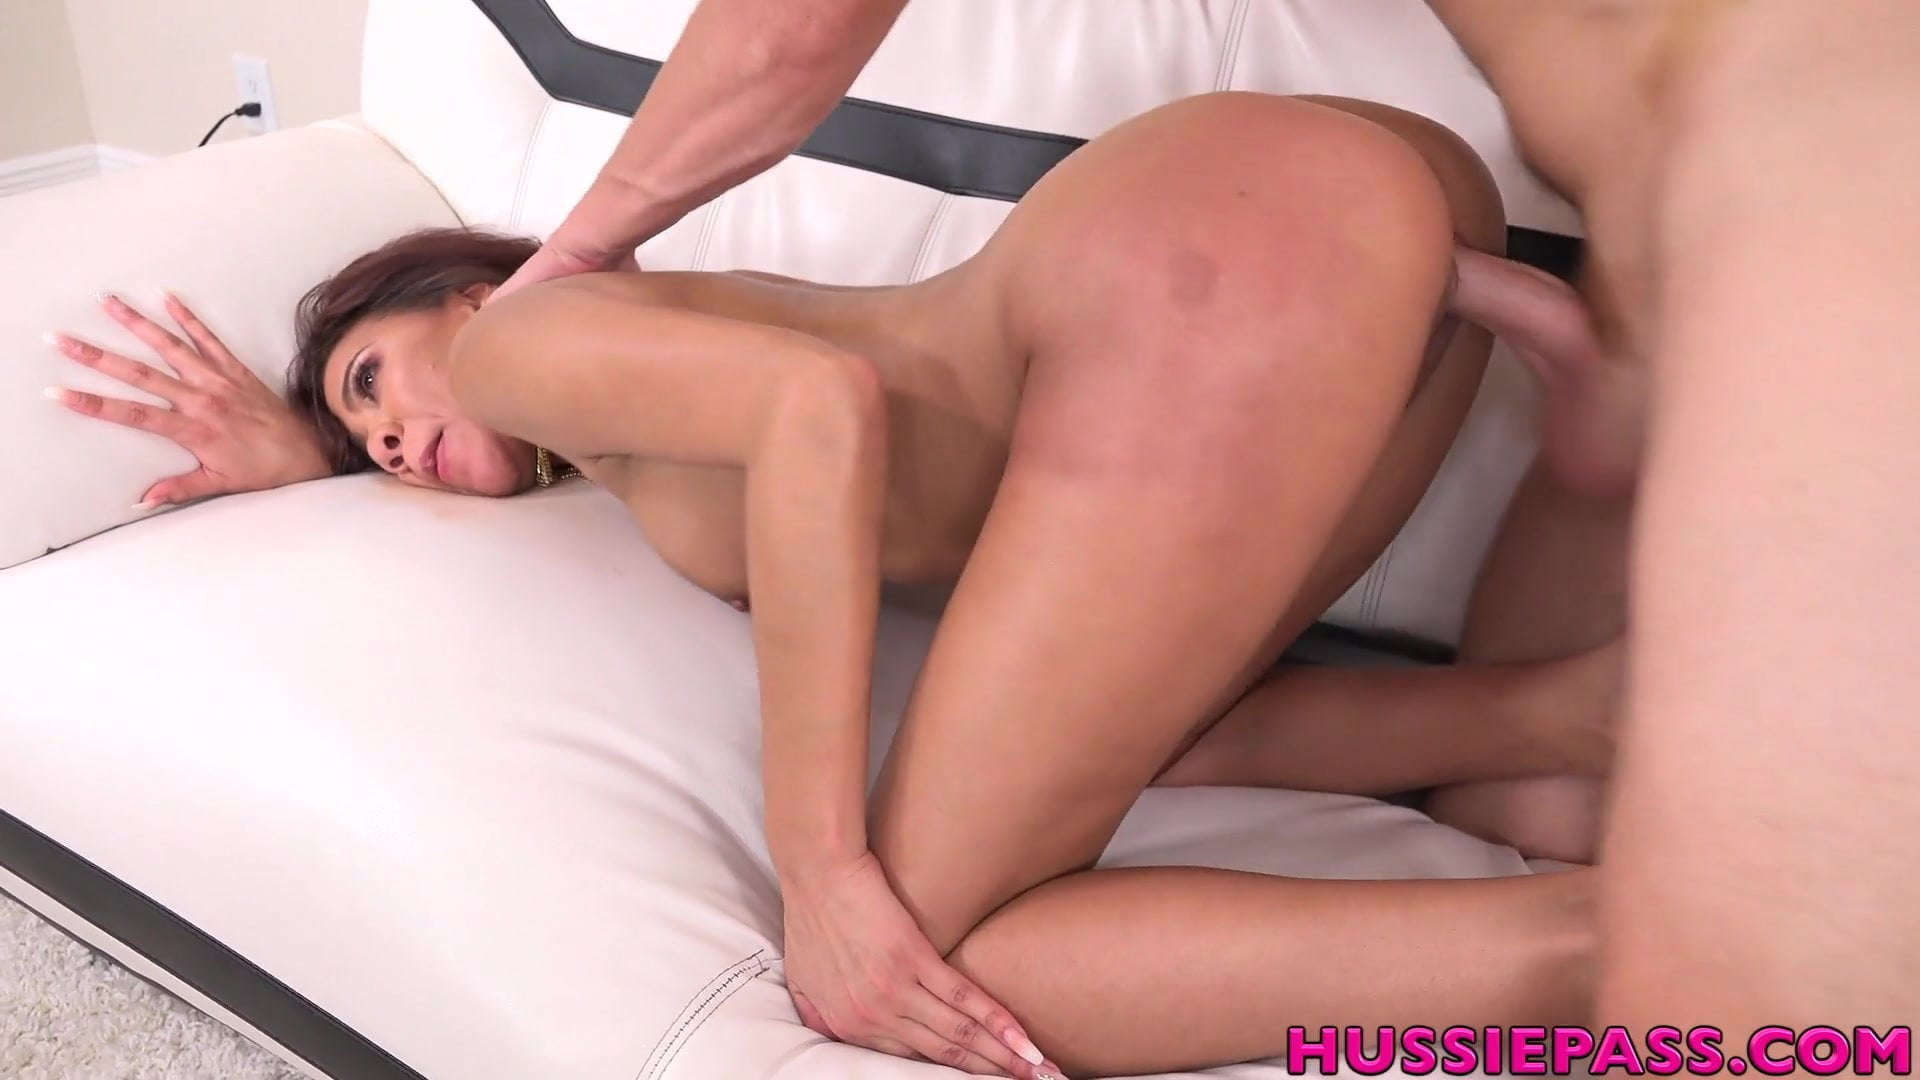 Free sex with girl london #10